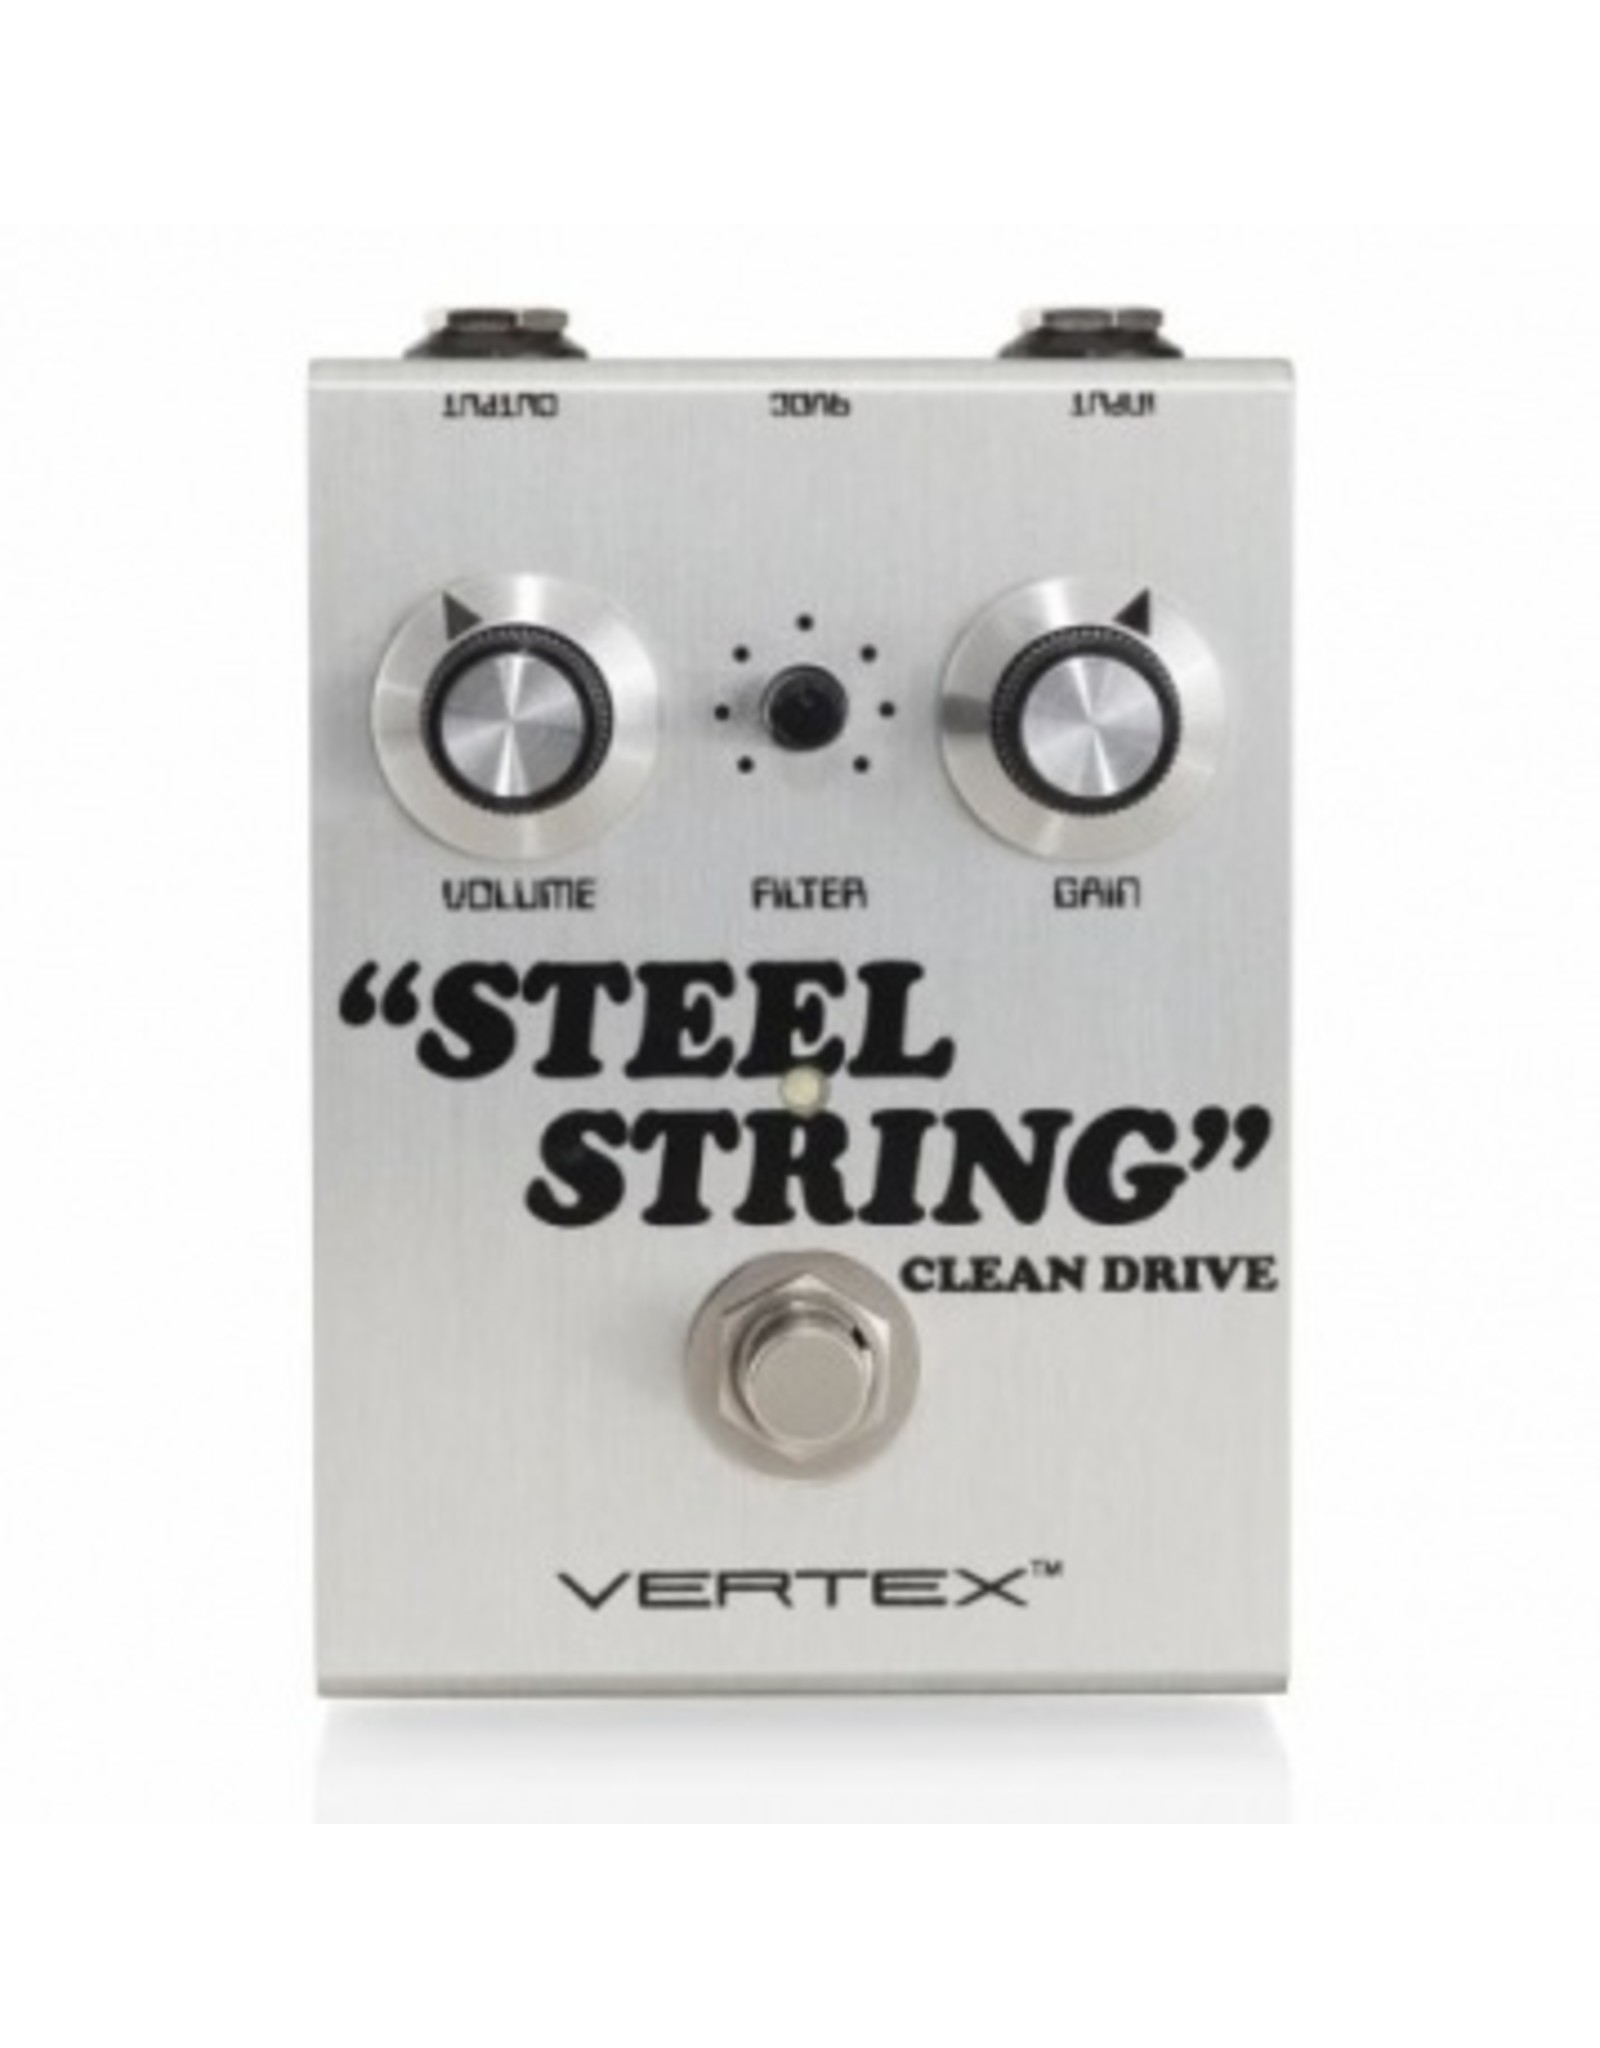 Vertex Vertex Steel String Overdrive